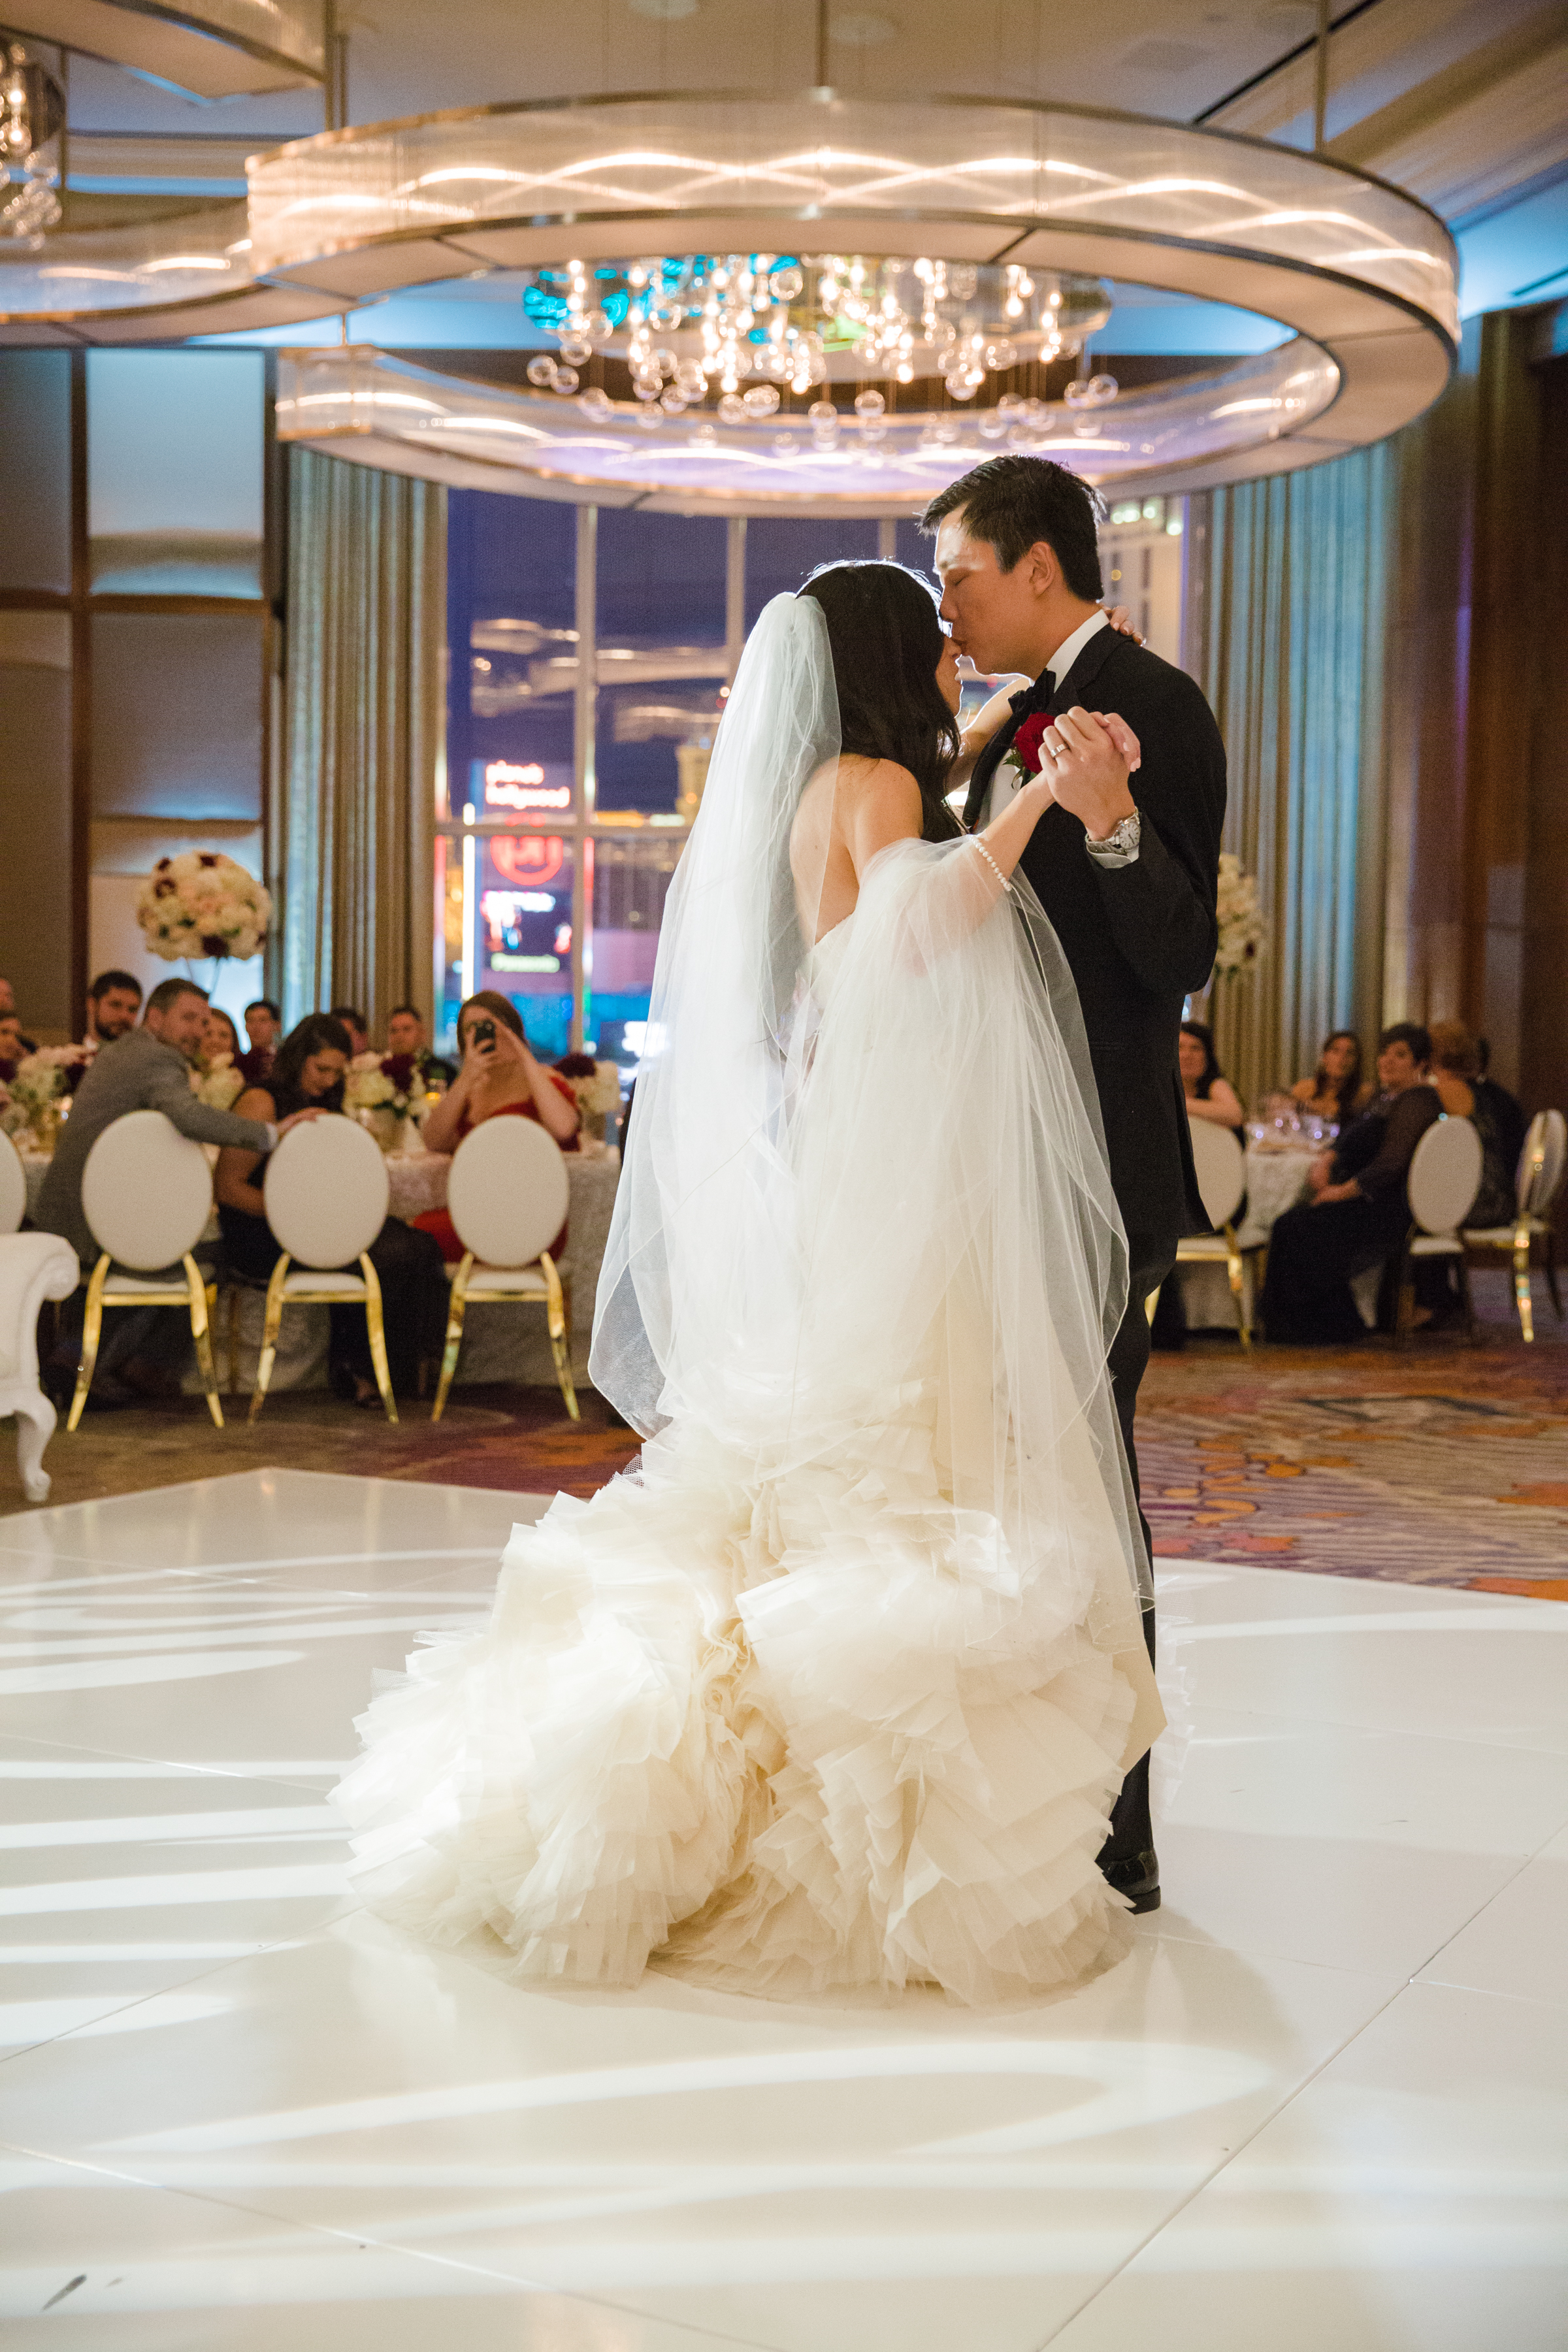 First dance on high gloss white dance floor. Bride in Vera Wang with beautiful veil.Luxury wedding at the Mandarin Oriental with a color scheme of white, blush, and pops of wine red produced by Las Vegas Wedding Planner Andrea Eppolito with photos by Stephen Salazar Photography.